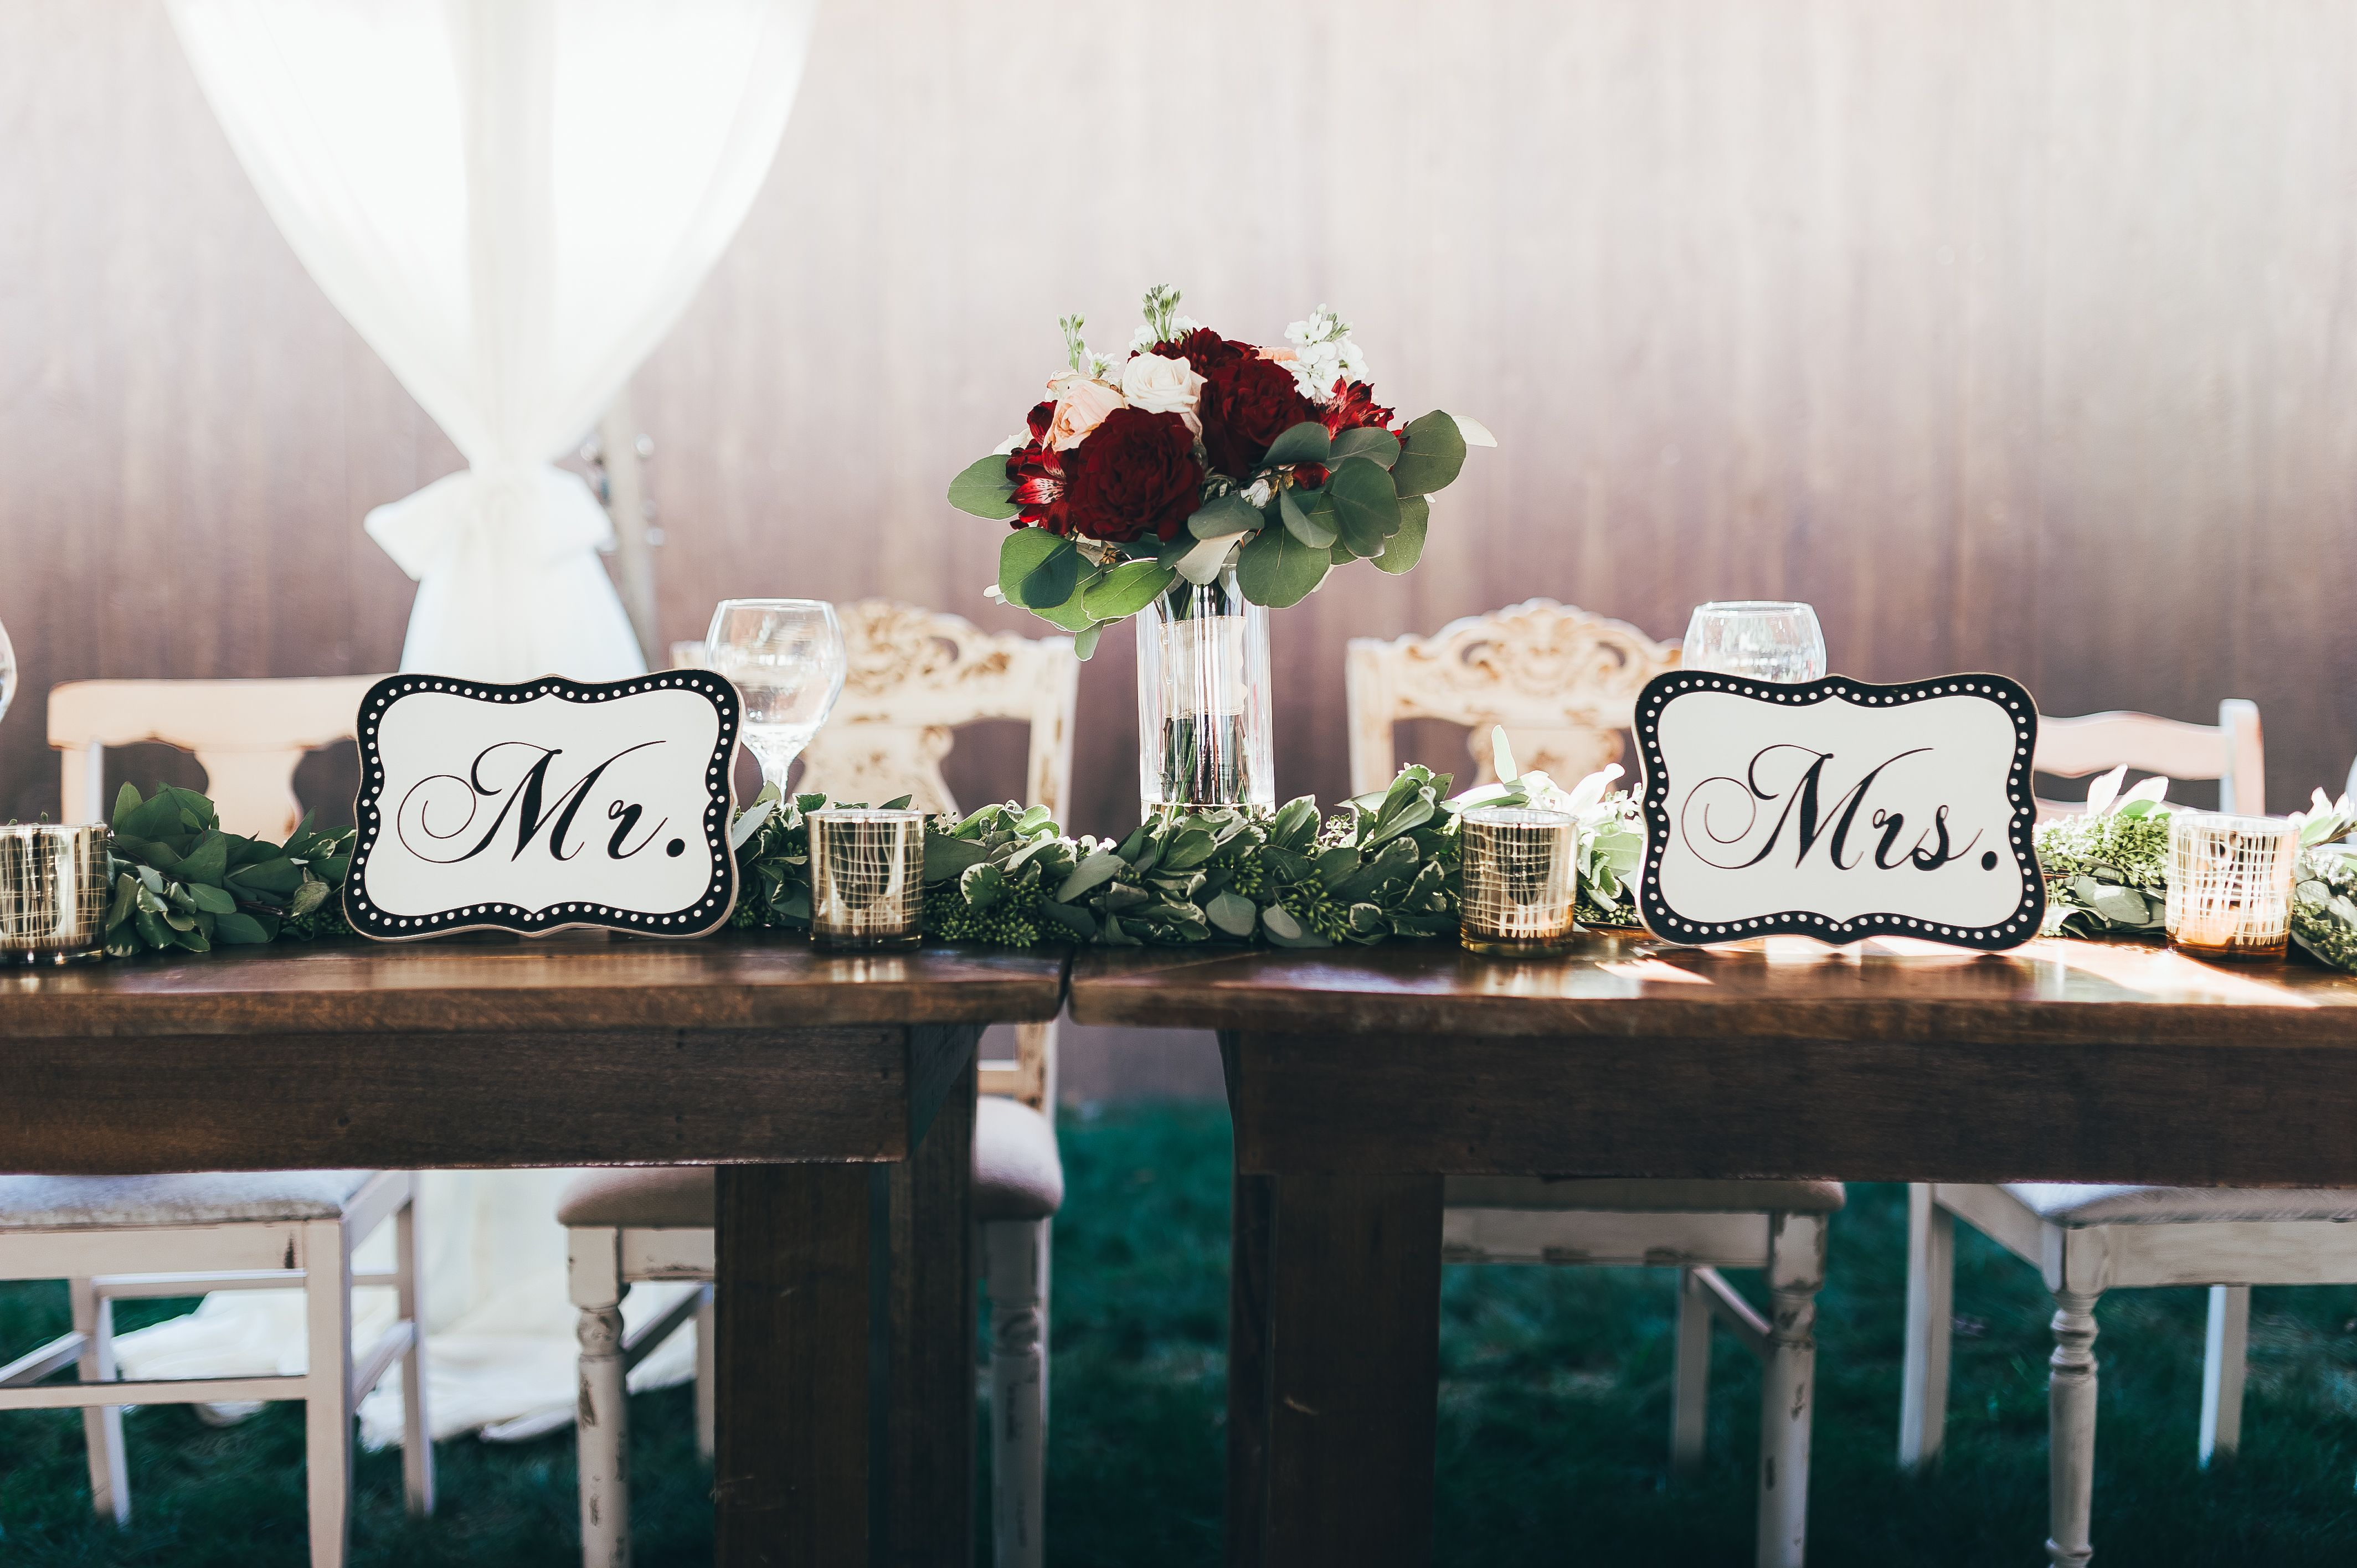 Head table for wedding party. Farm tables and mix matched